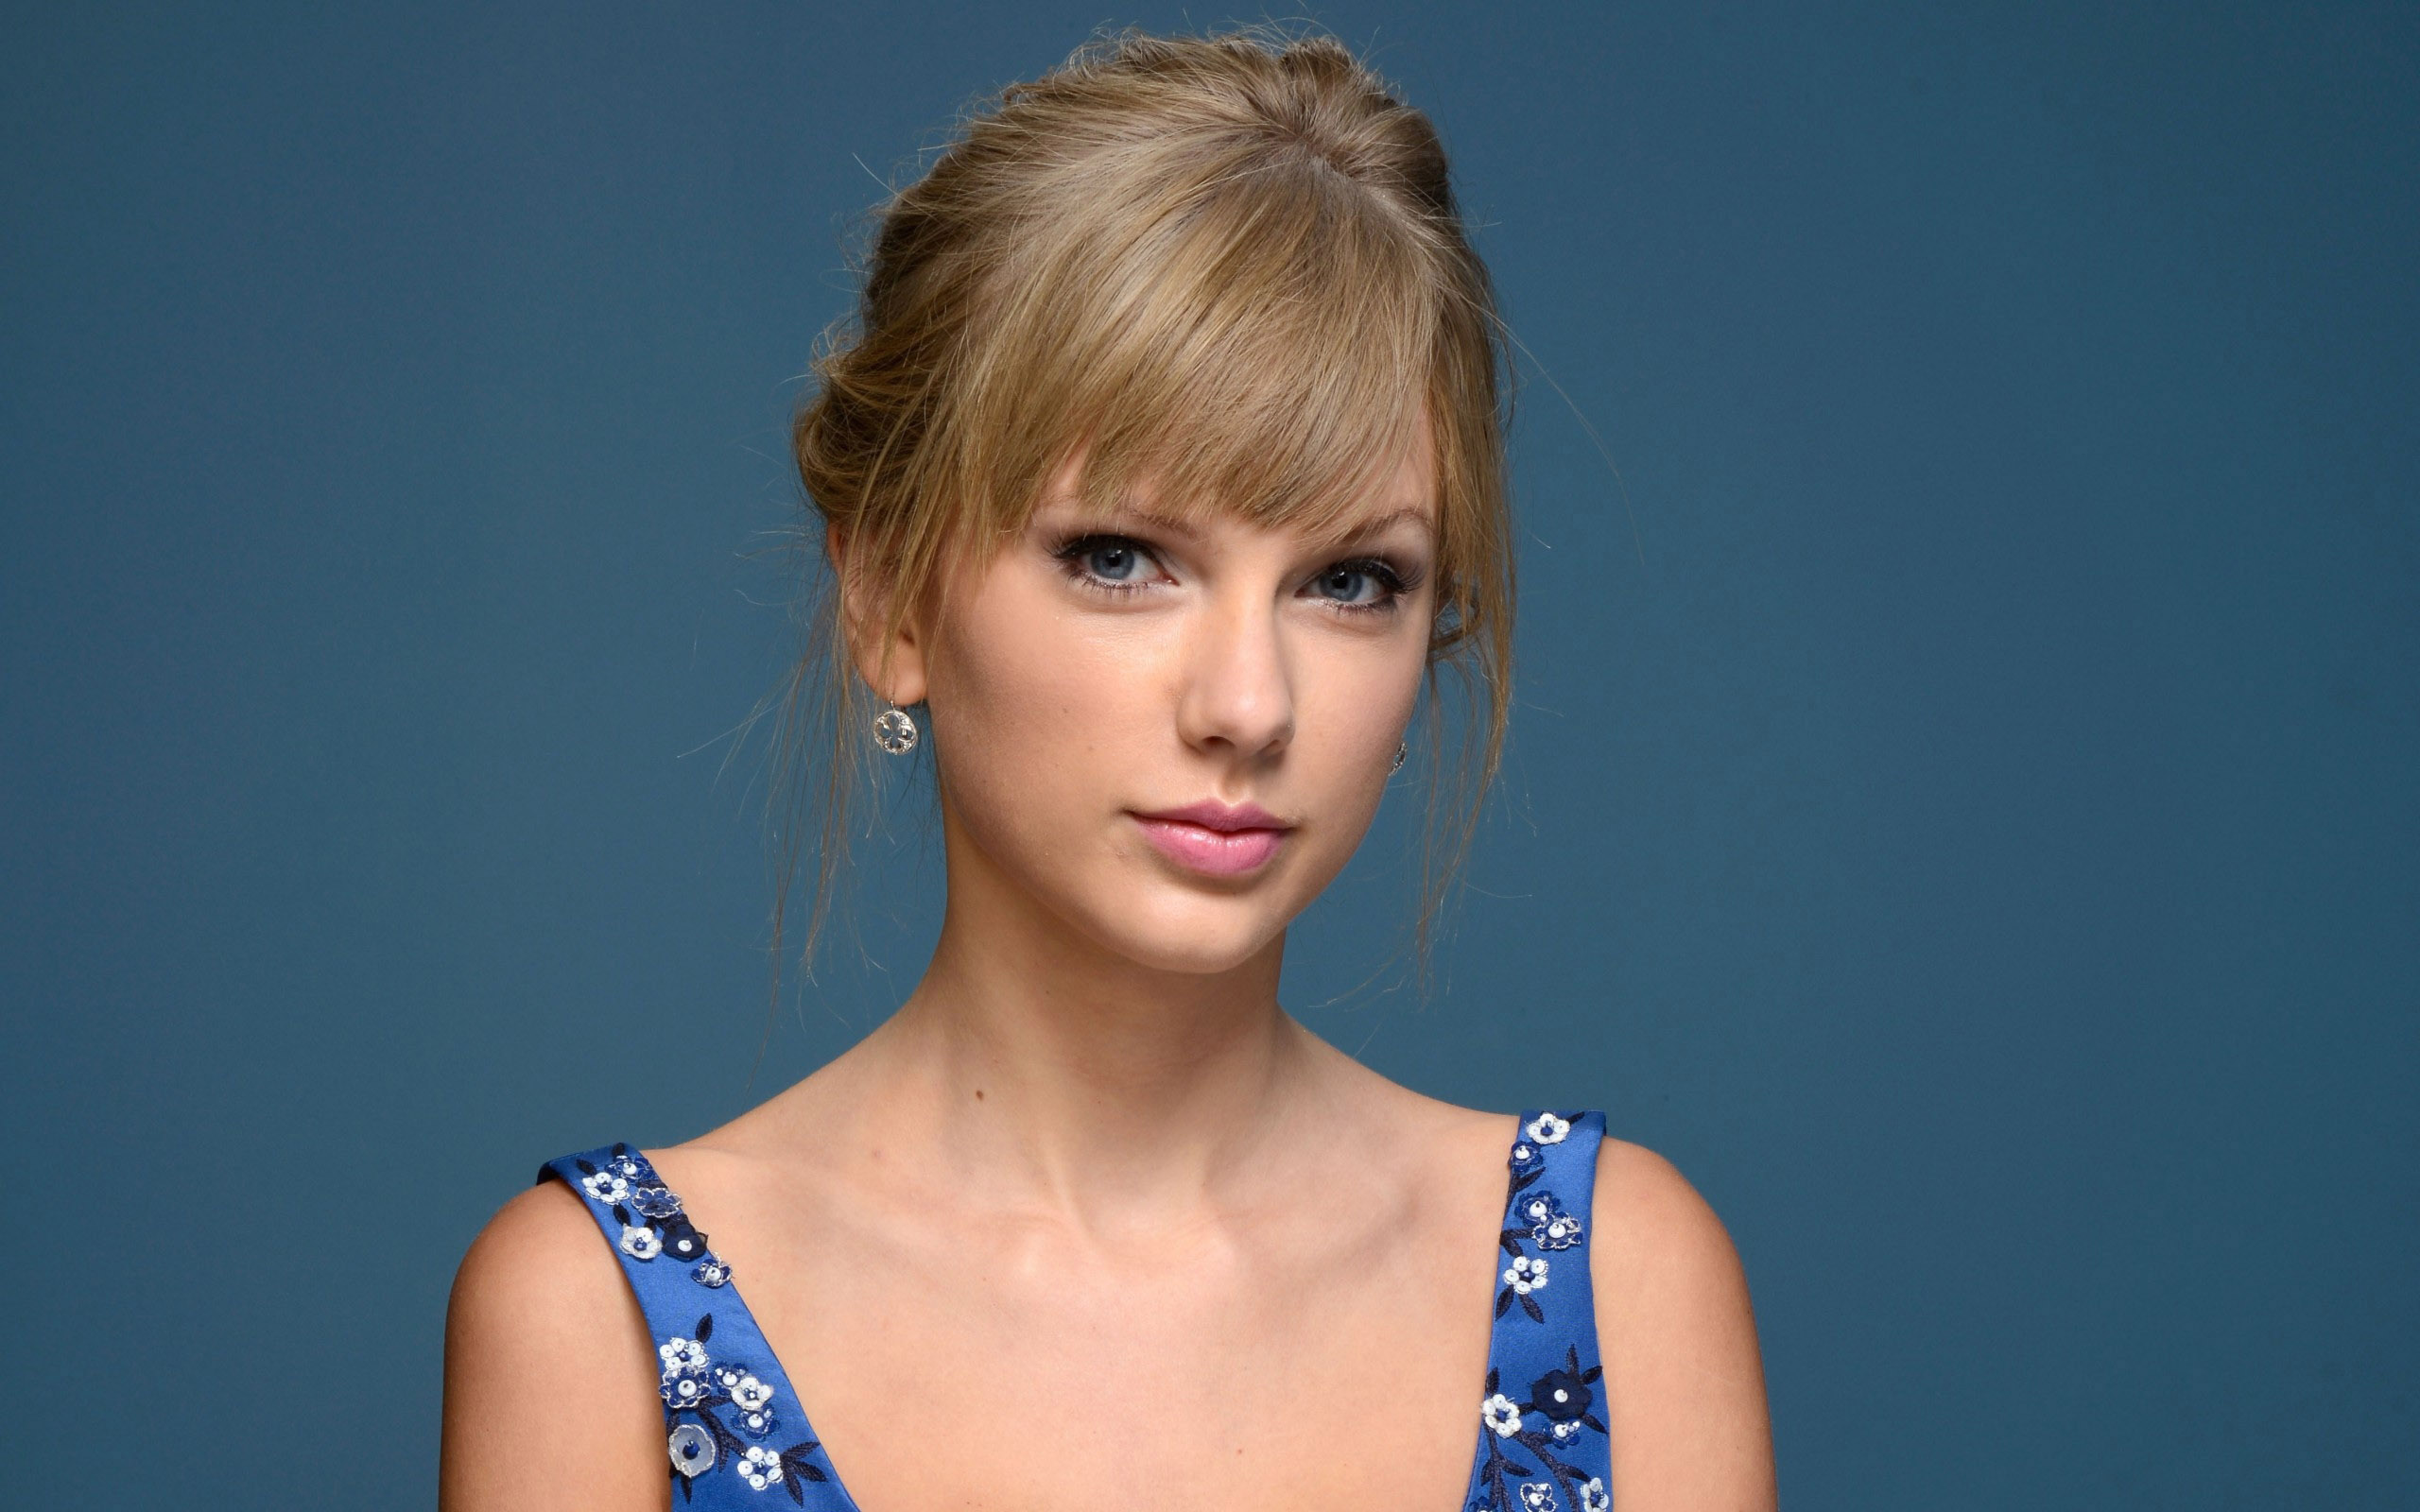 ... Taylor Swift 2015 Wallpaper ...